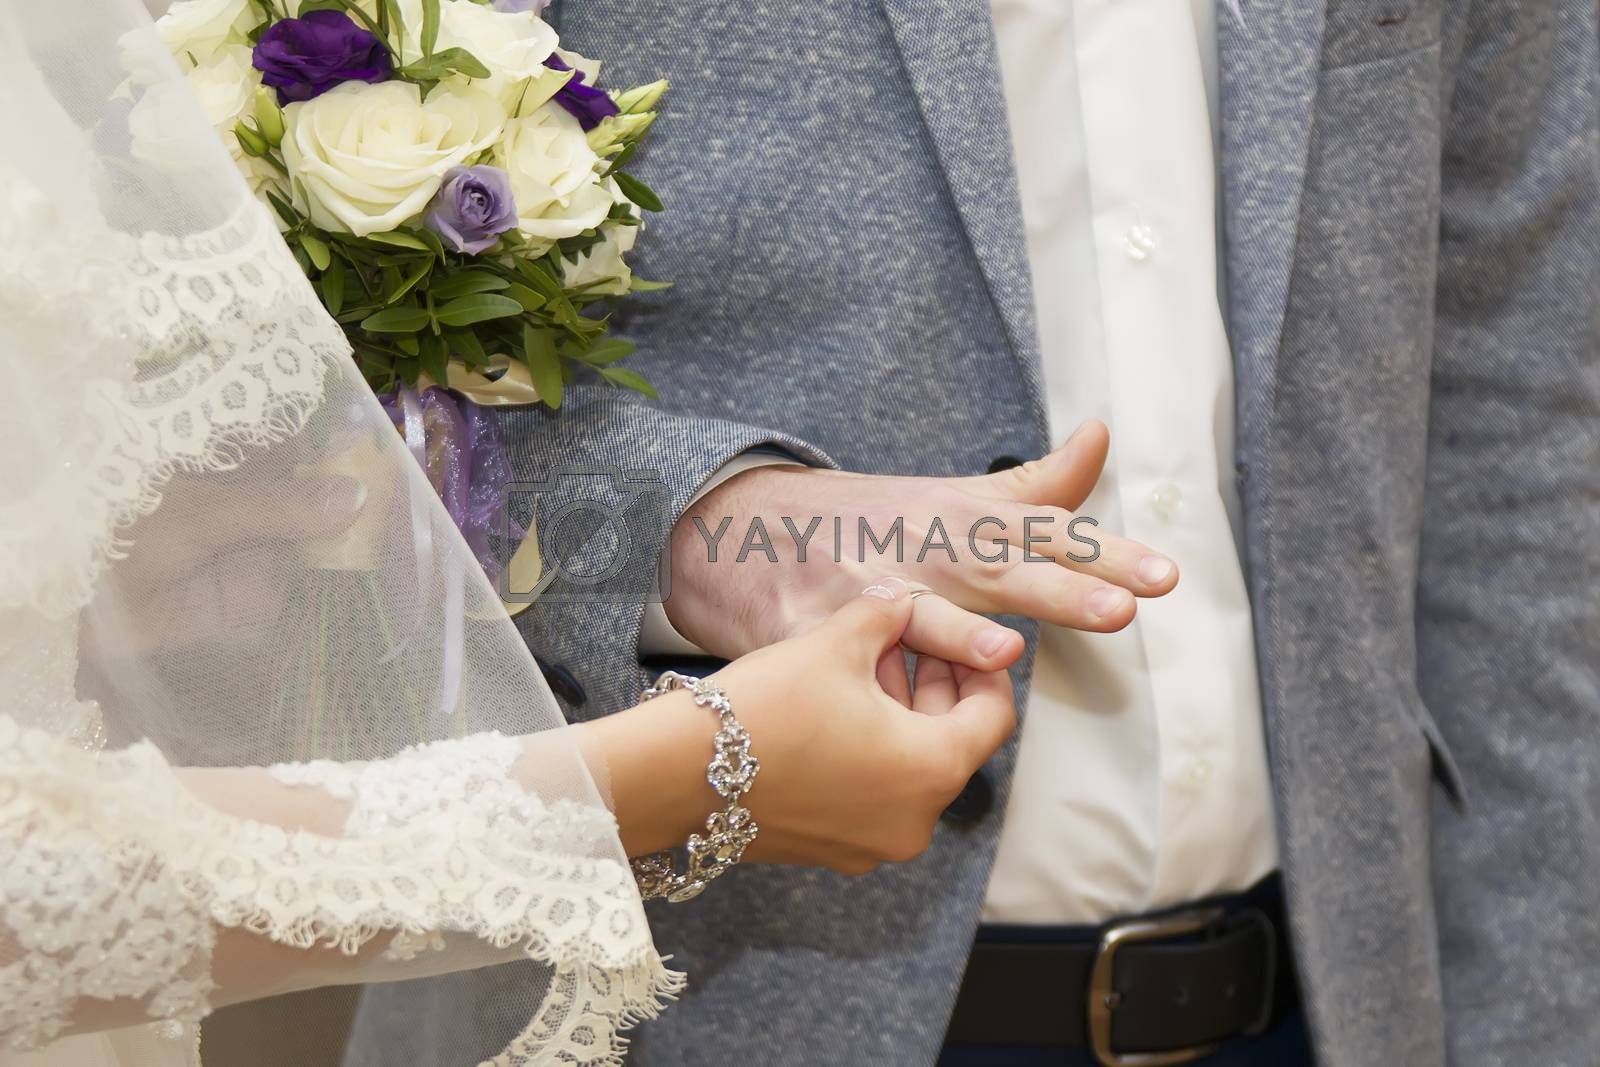 The groom wears an engagement ring to the groom. Dress the wedding ring